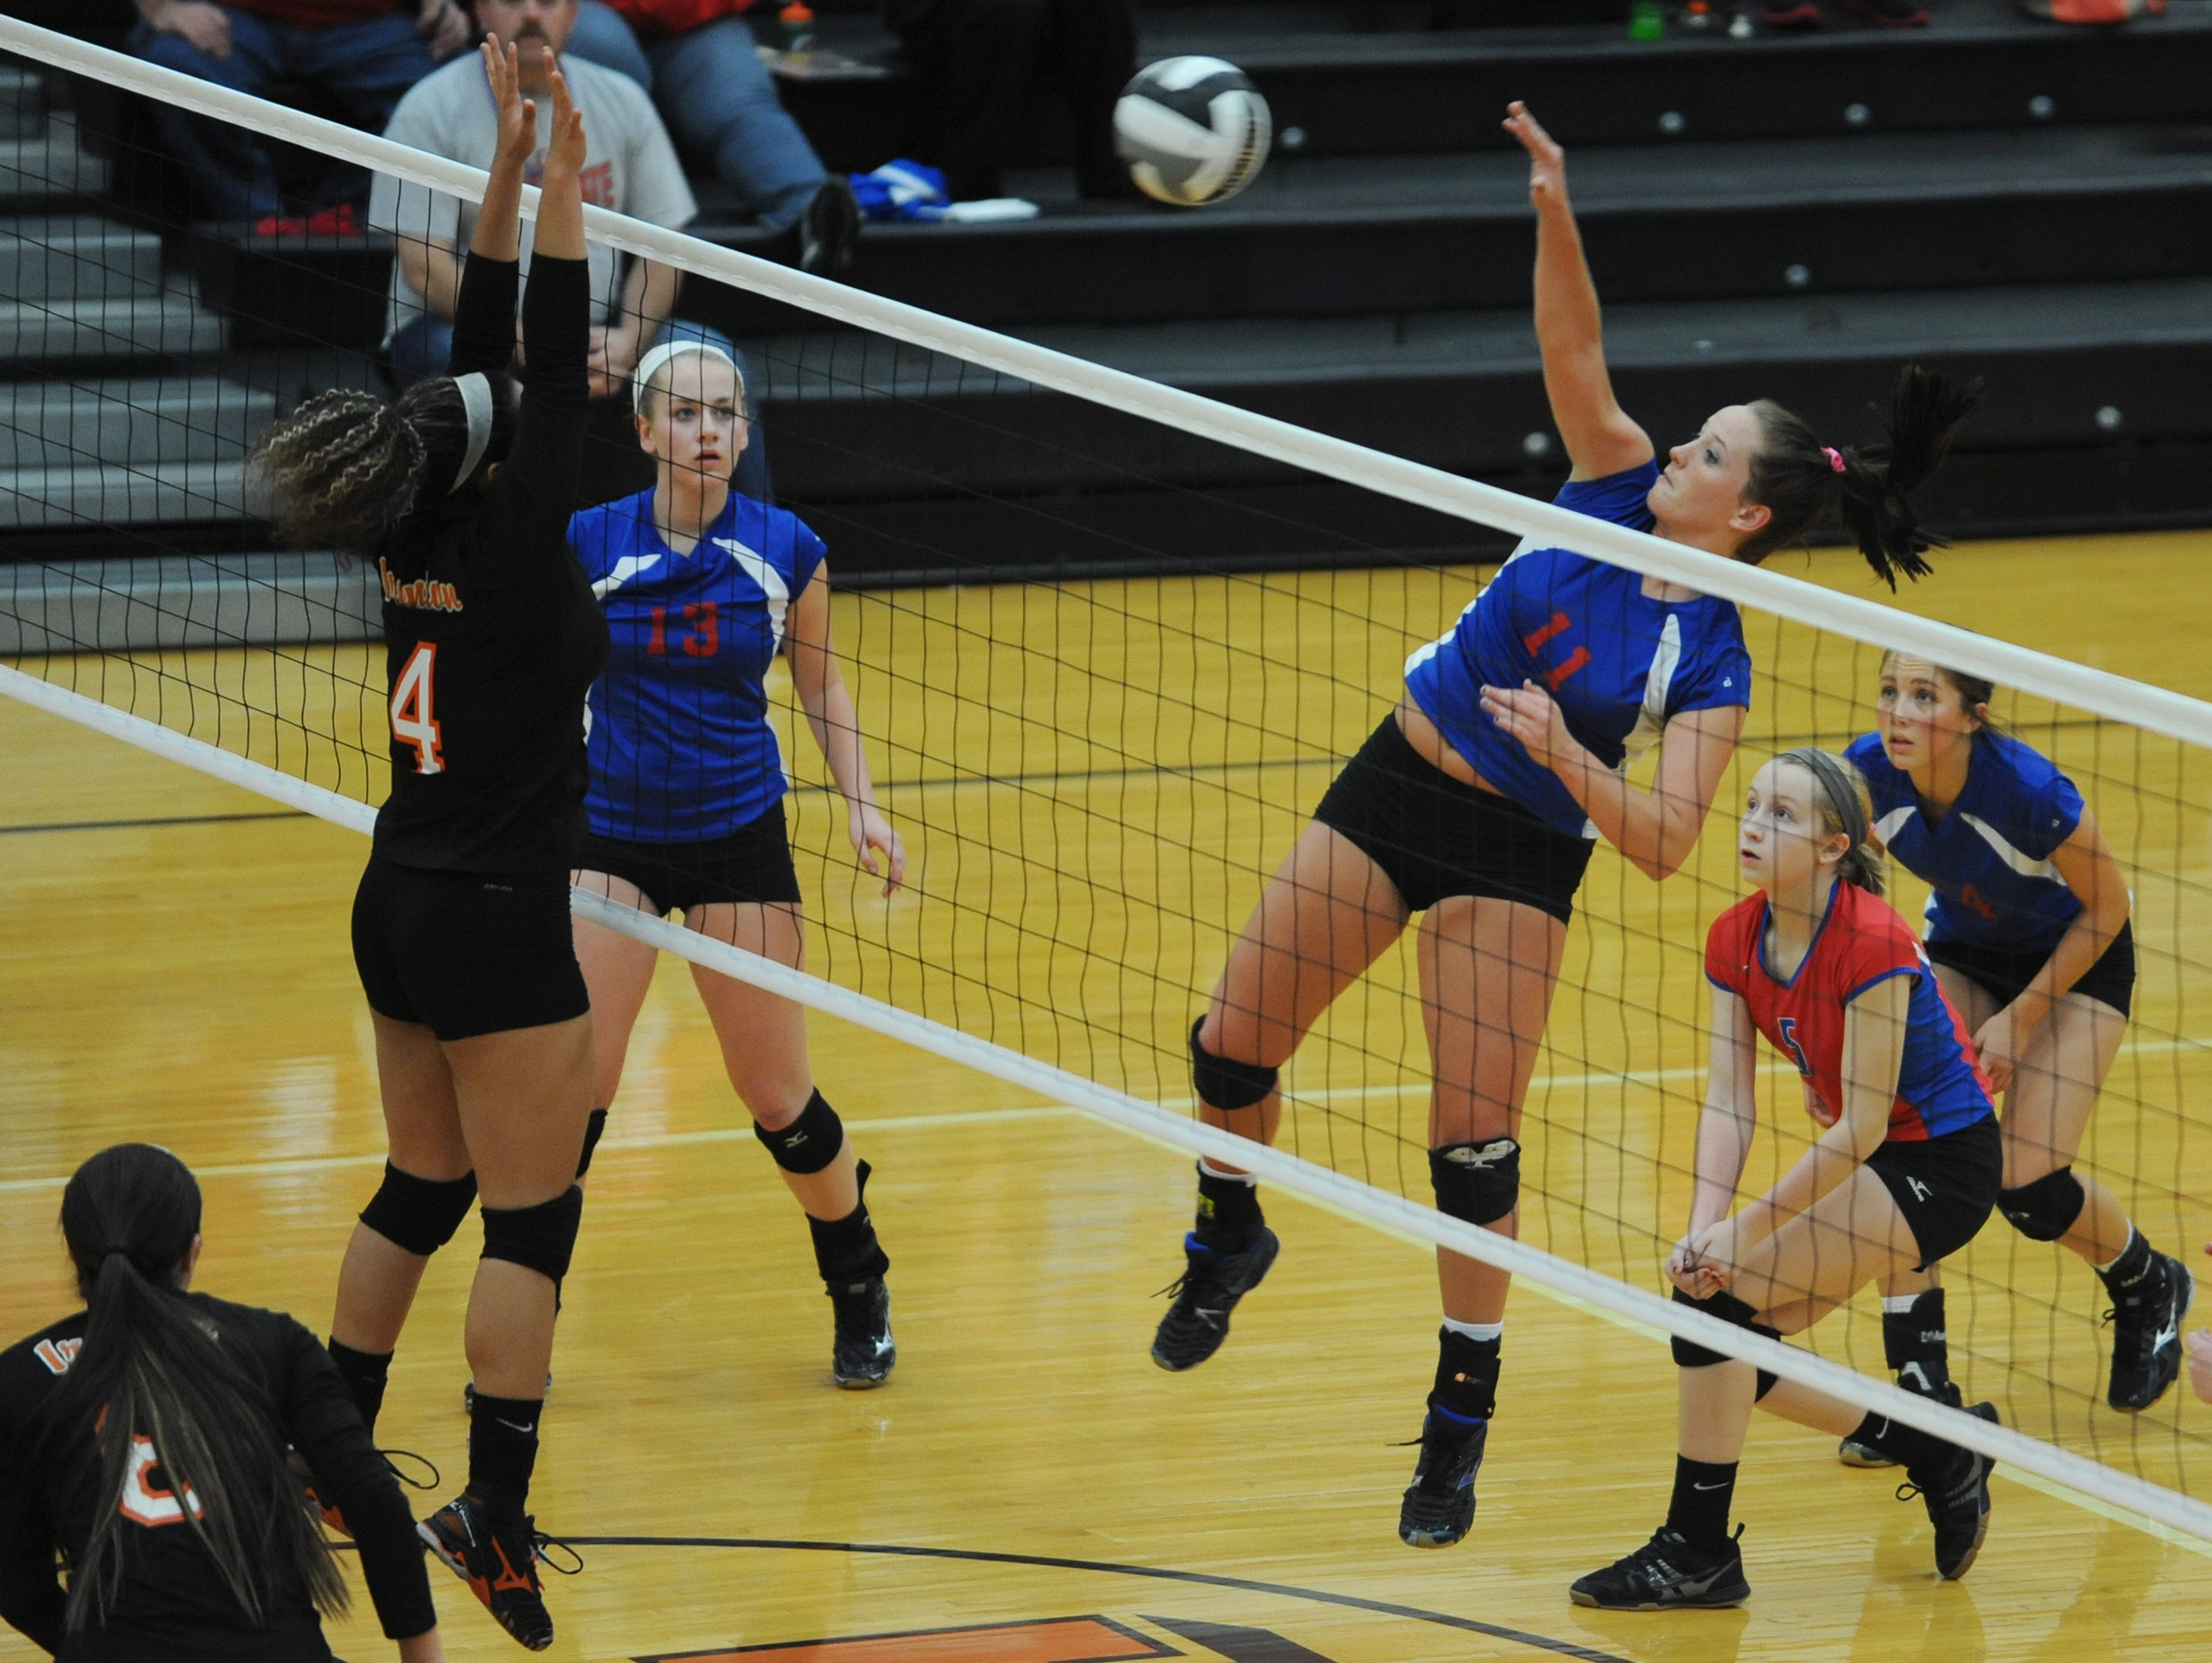 Zane Trace's Katie Unger hits the ball over the net past an Ironton opponent Wednesday at Waverly High School. Zane Trace defeated Ironton 3-1.